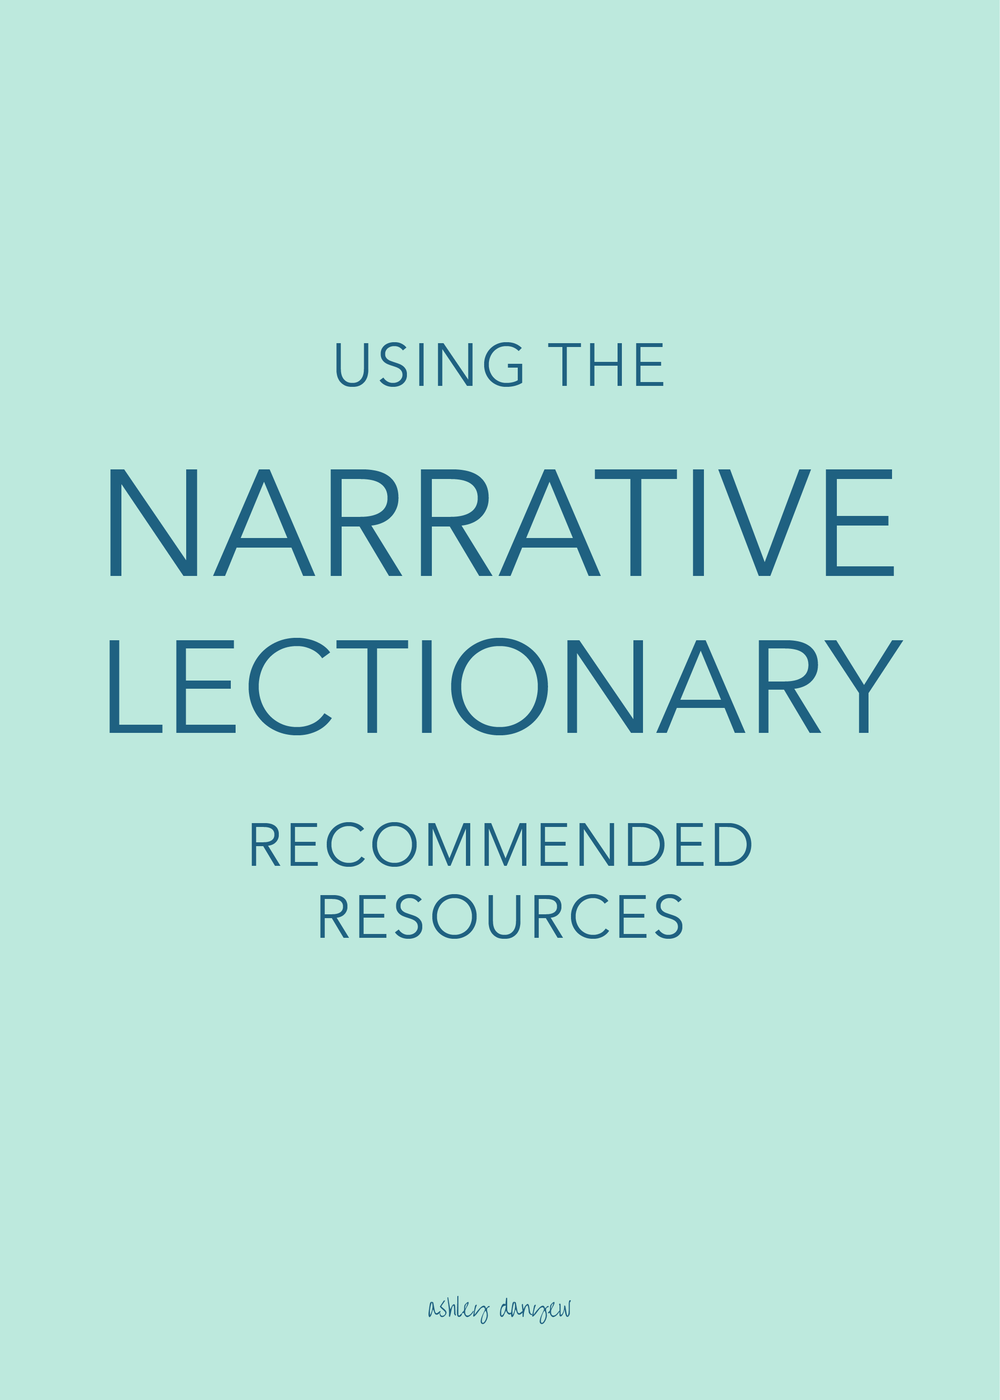 Using the Narrative Lectionary: Recommended Resources